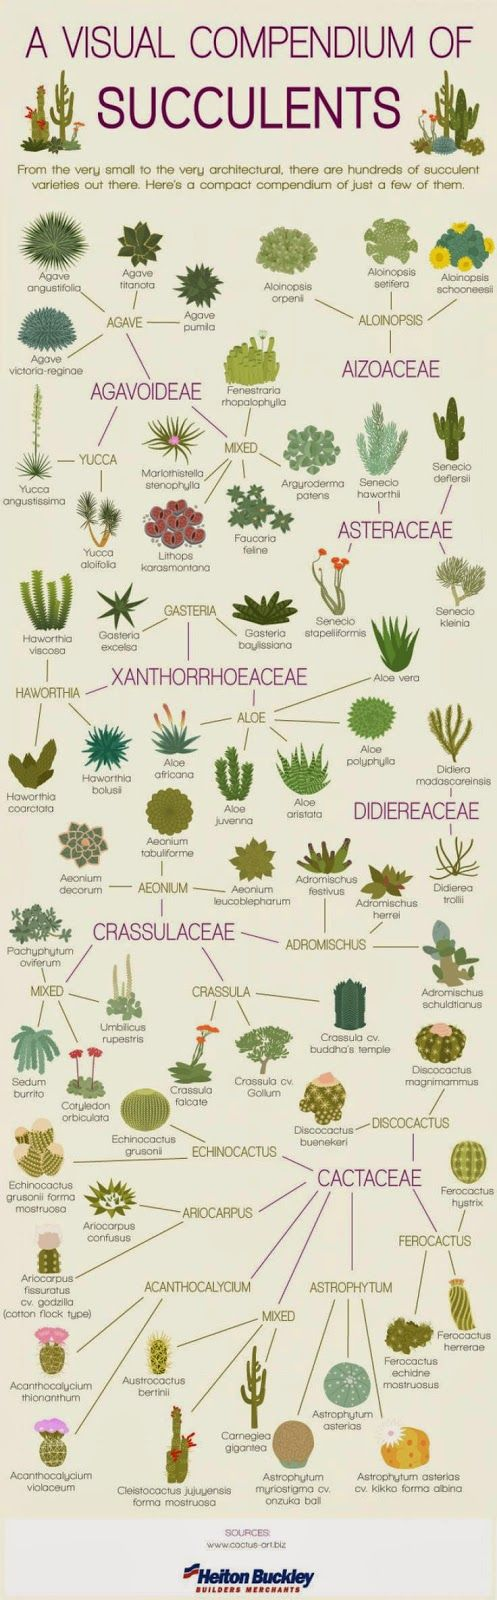 The Ultimate Houseplant Guide — H u r d & H o n e y on succulent toes, succulent id, succulent pallet wall, succulent varieties, succulent wall decor, succulent wall letters, succulent vines, succulent plants, succulent ivy, succulent living wall, succulent pig, succulent with pink flowers, succulent leaves,